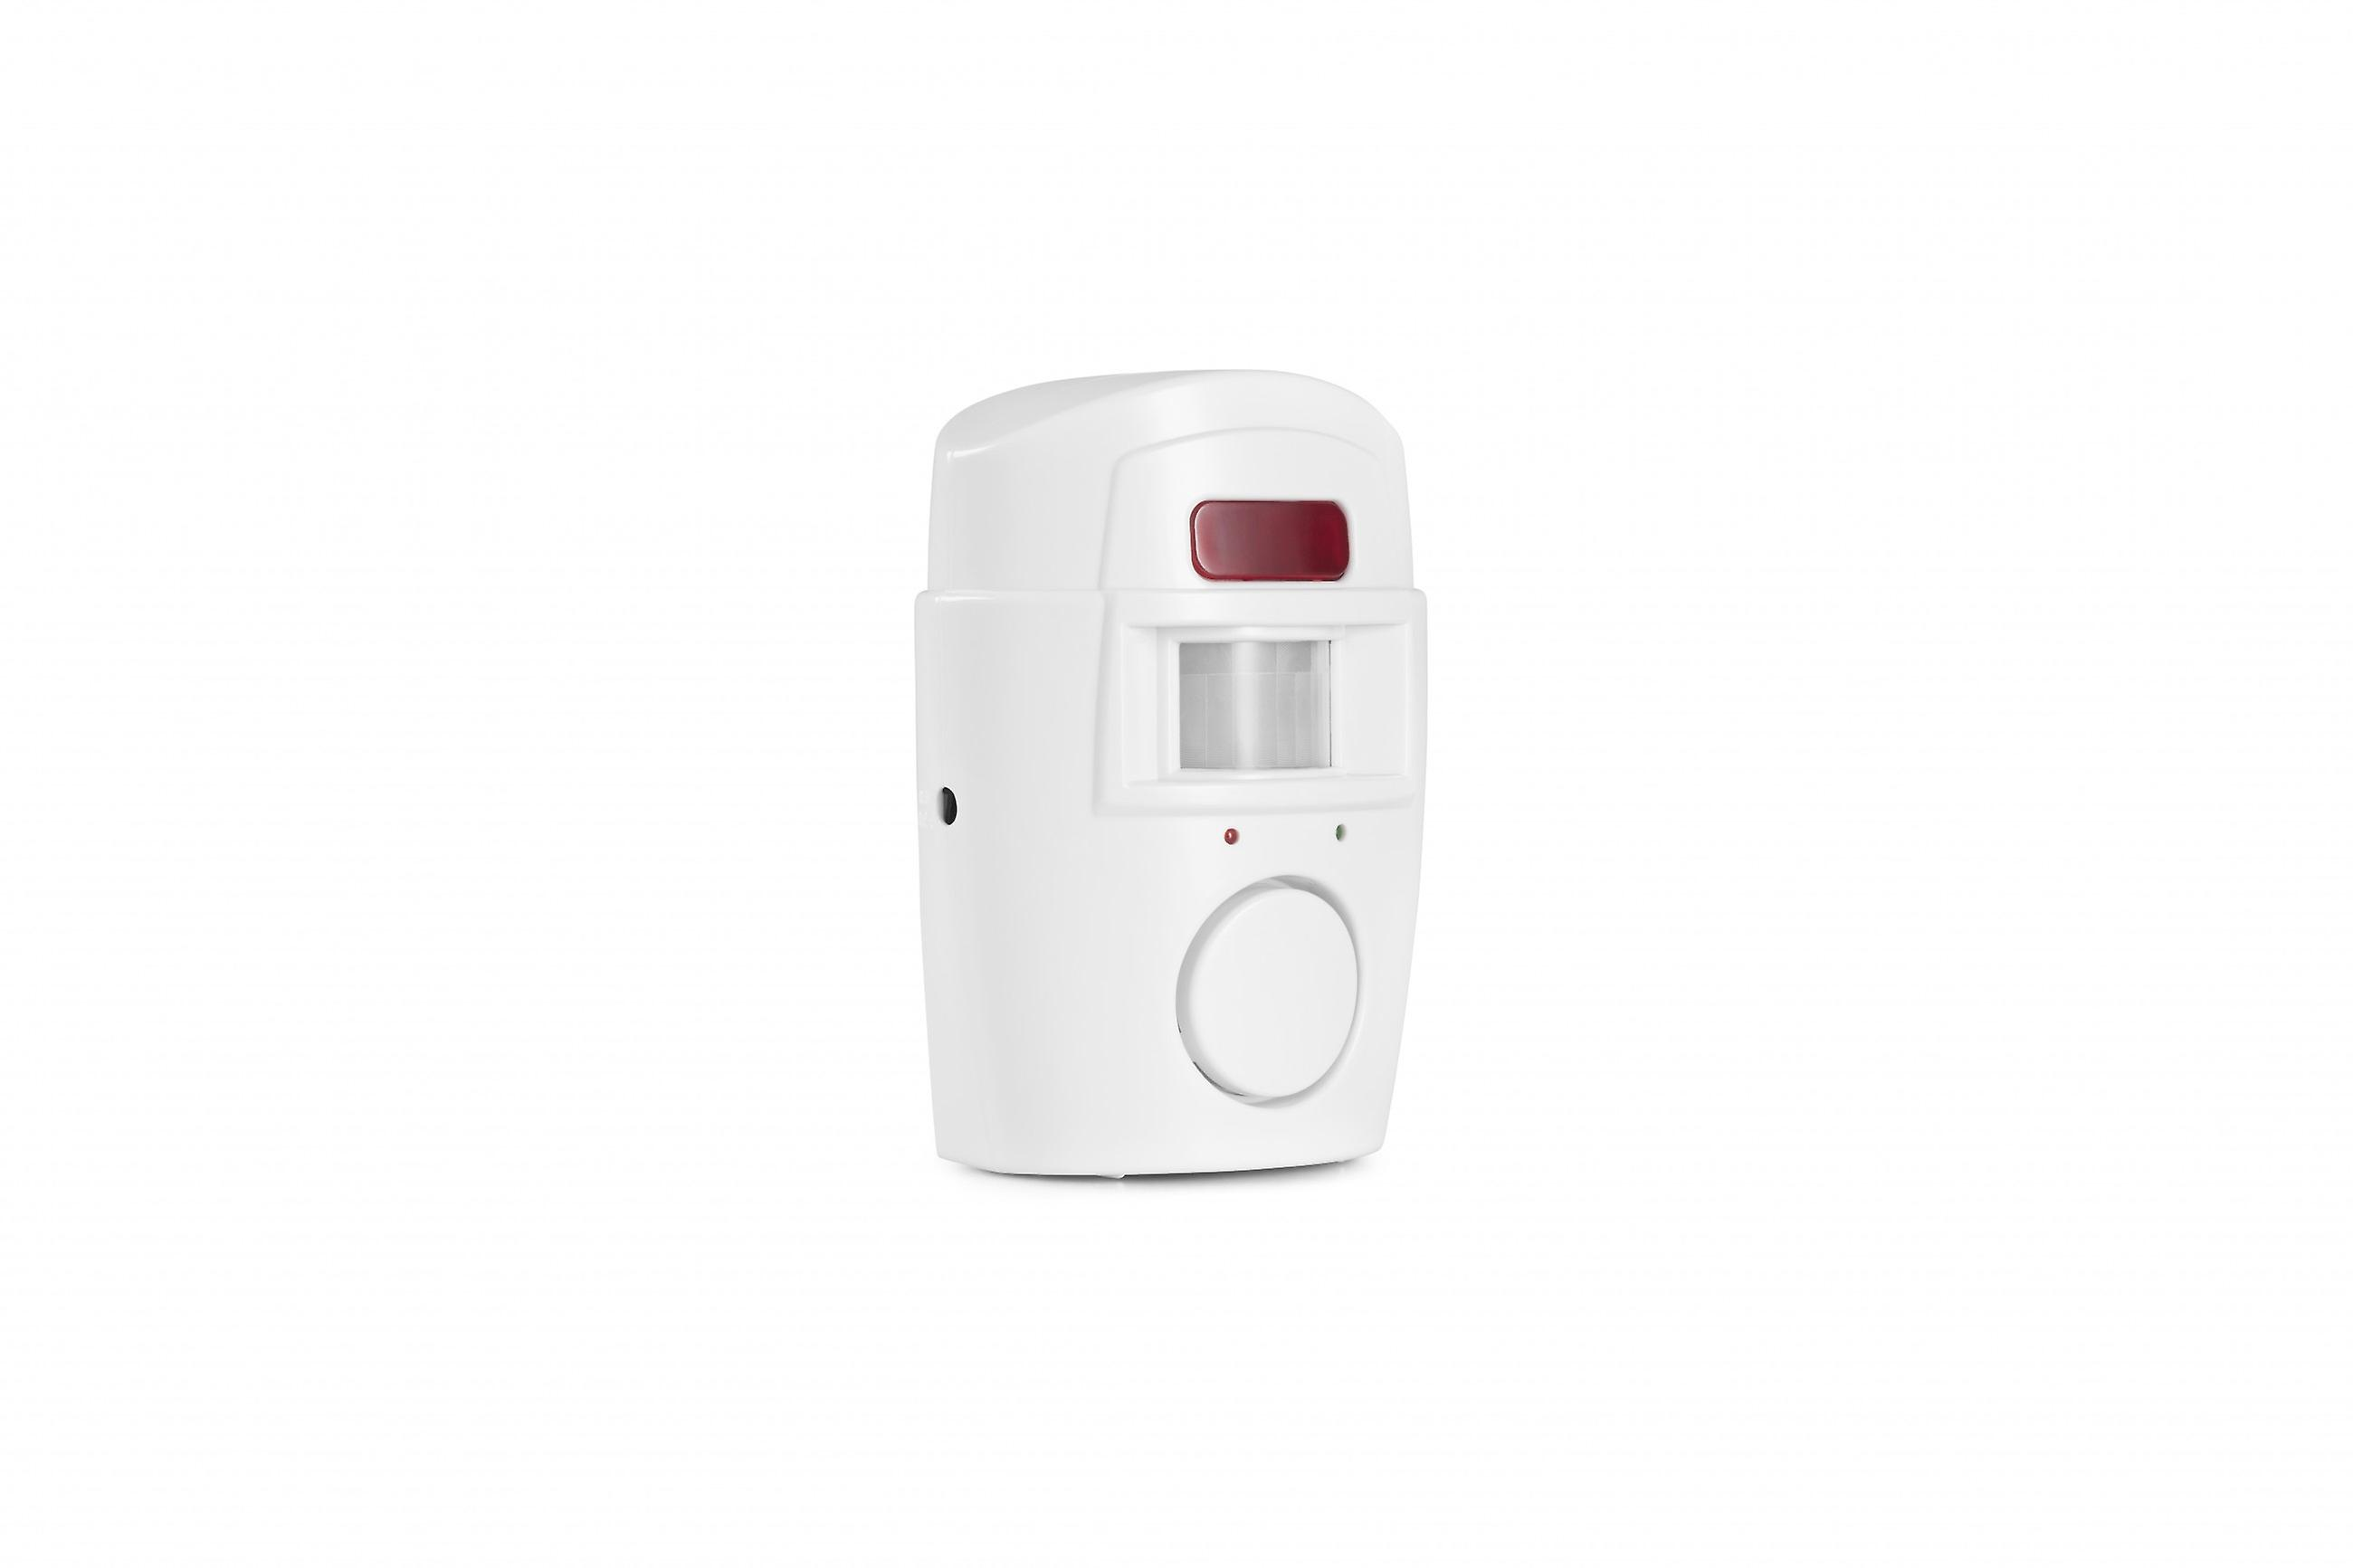 TECHNOSMART alarm with motion detector, alarm system PIR with infrared motion sensor wireless 118 dB, 2 x remote control, for home, apartment, shop, office